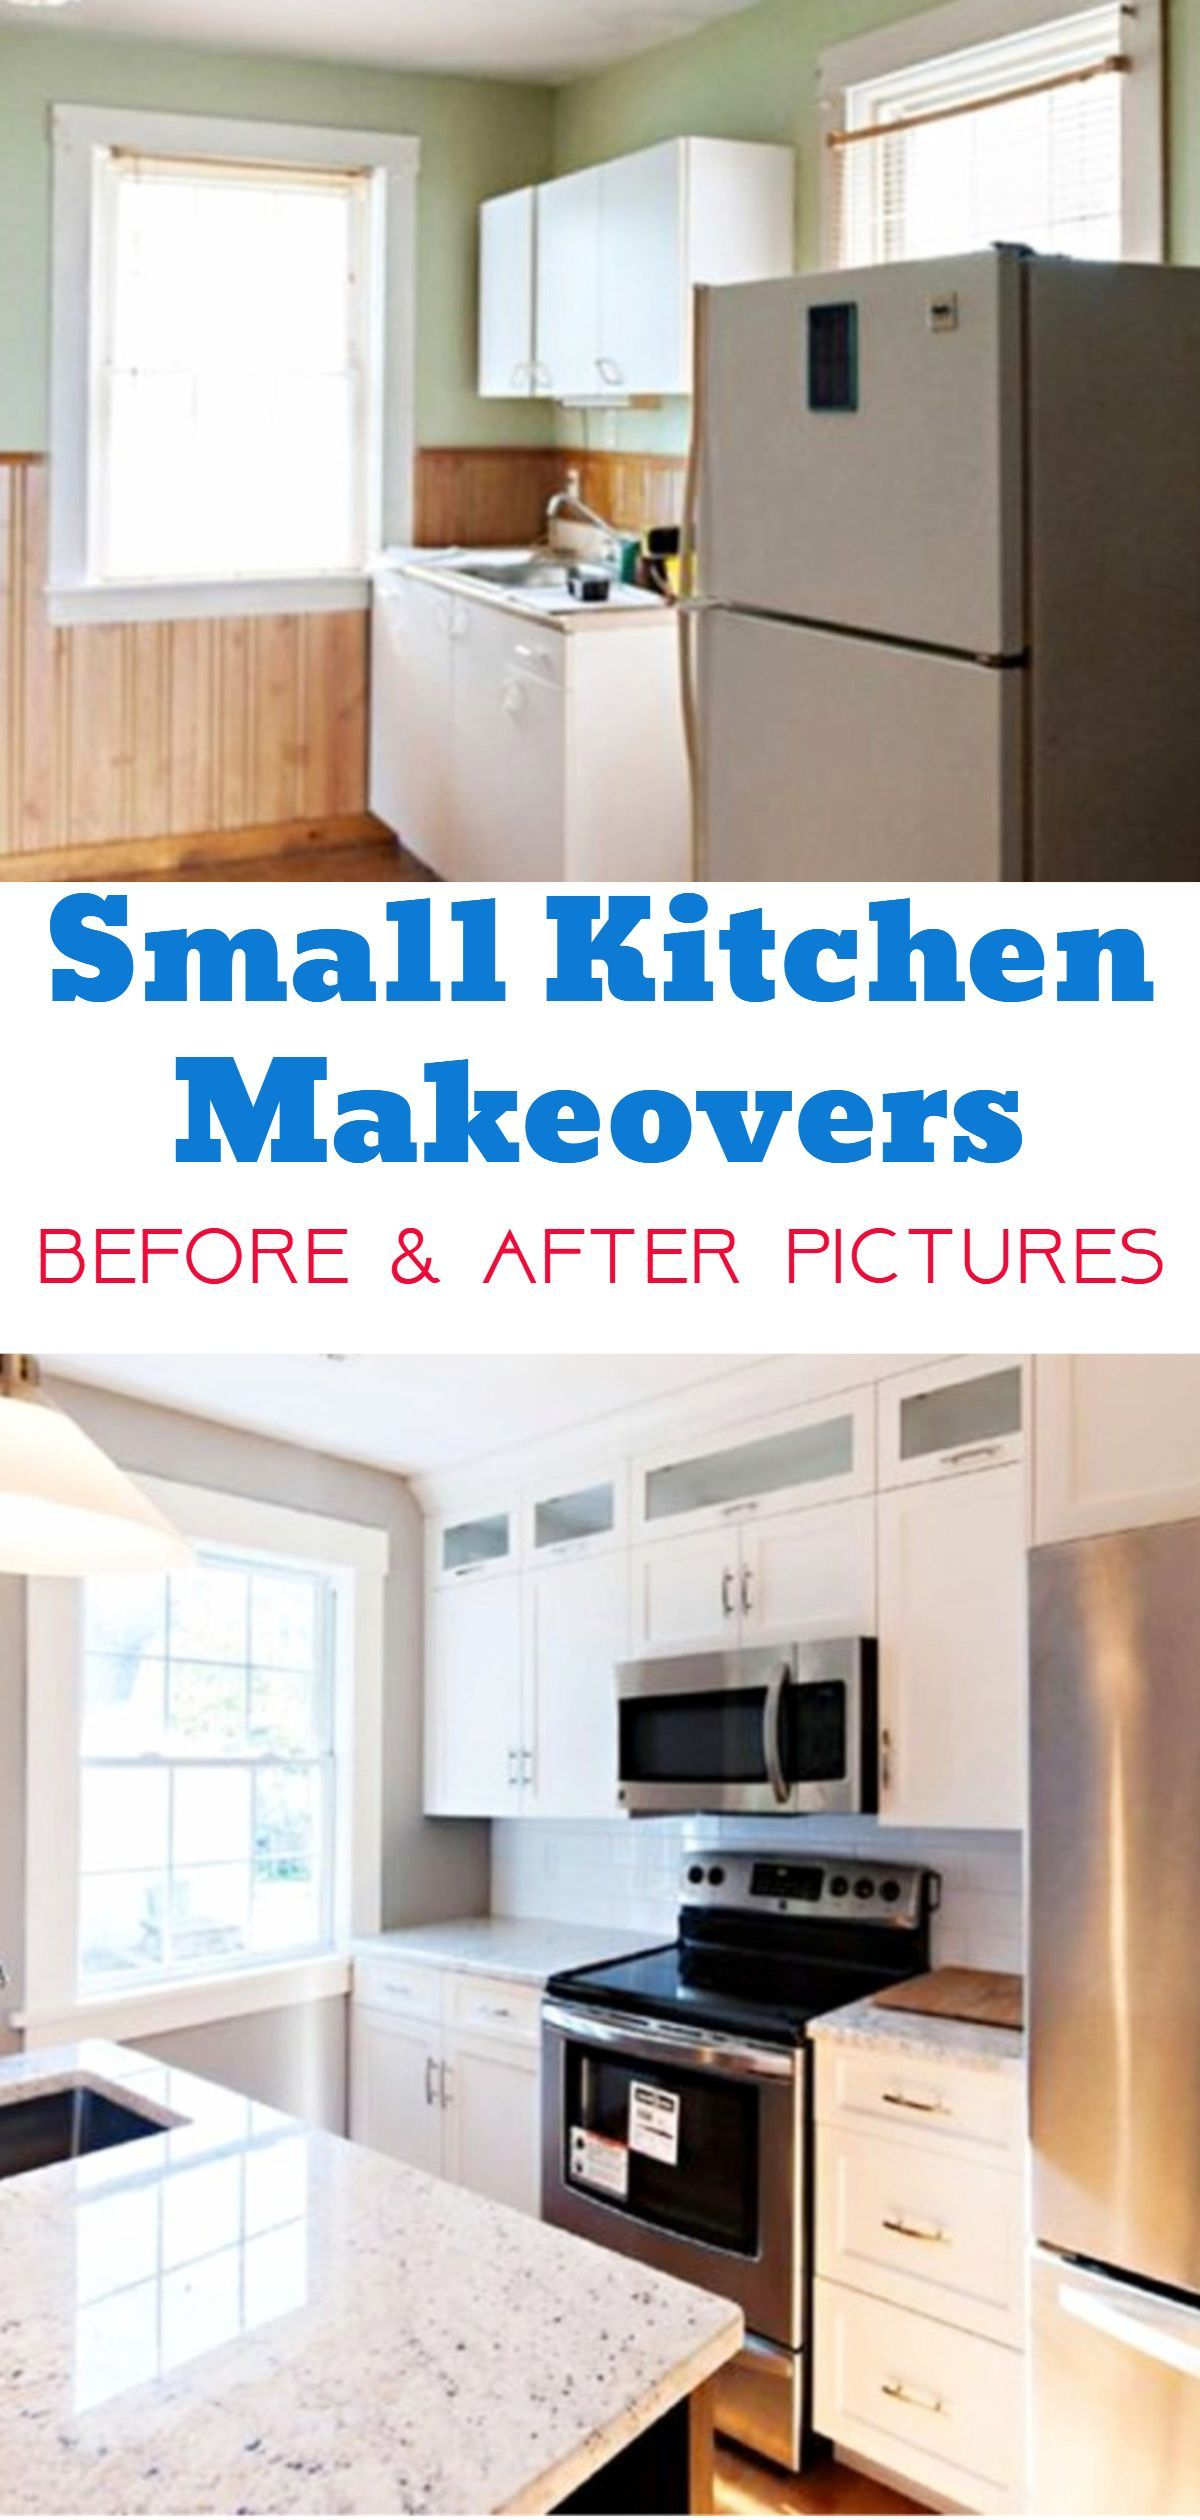 Small Kitchen Makeovers  Before & After Pictures Of Small